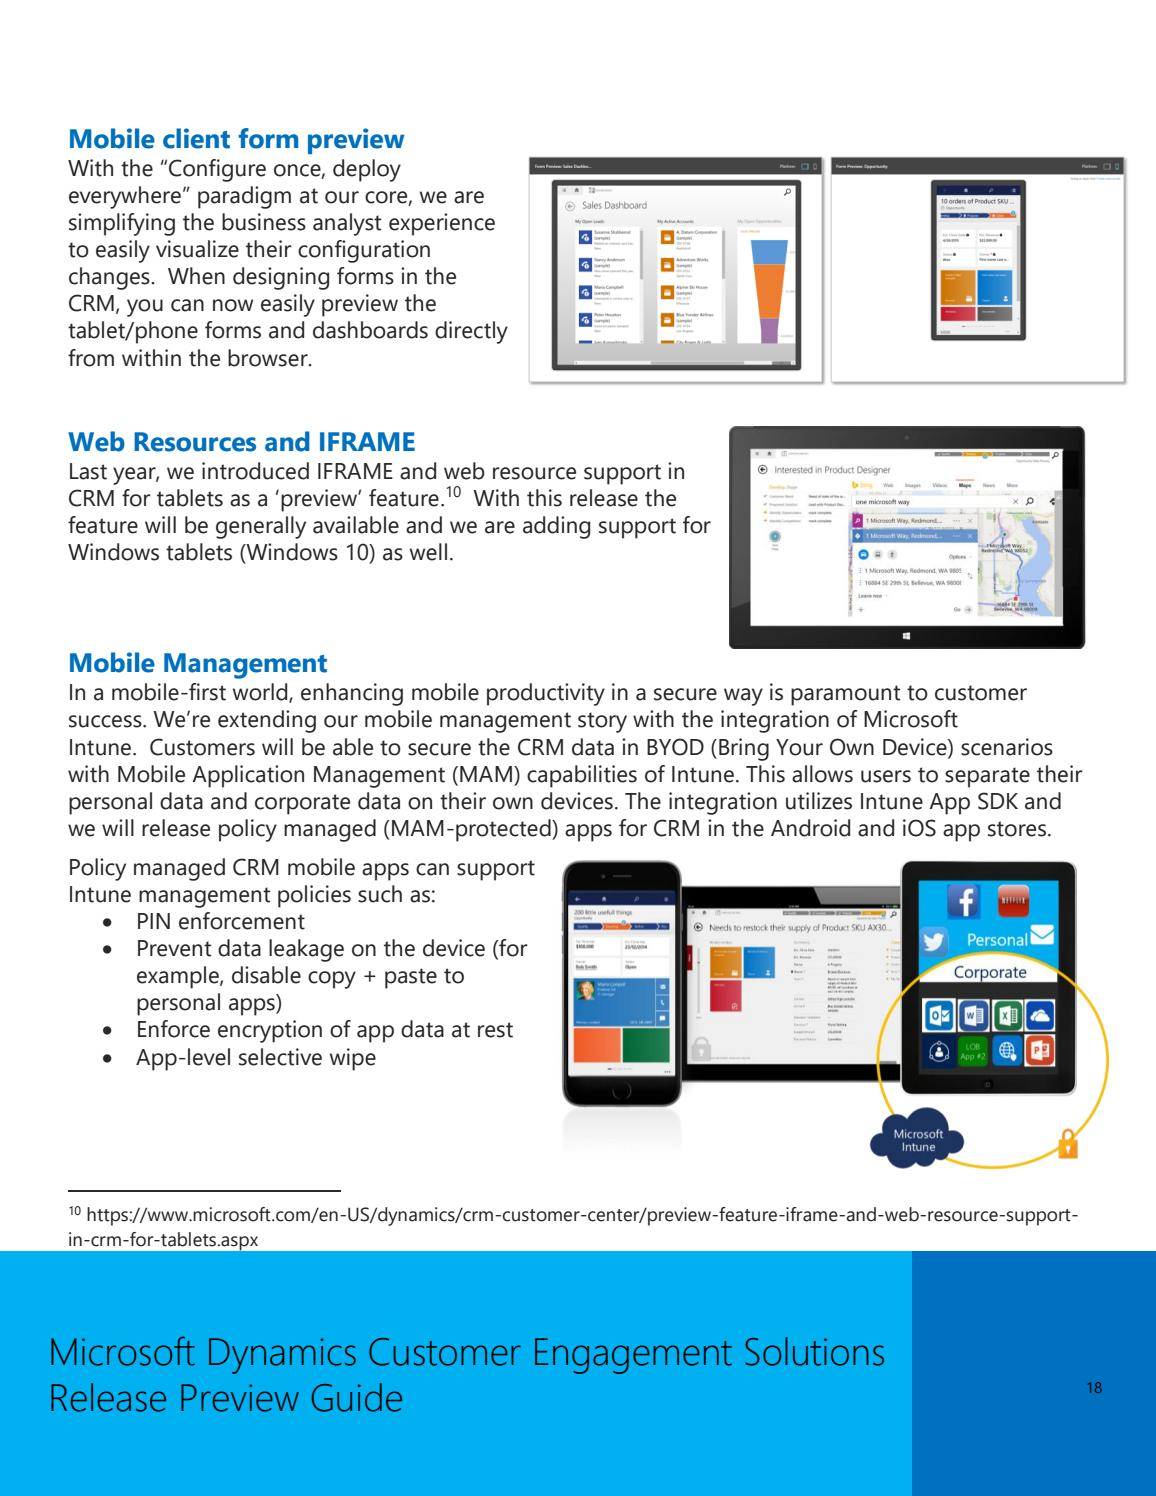 Ebook Dynamics CRM 2016 - Release preview guide by ANEGIS